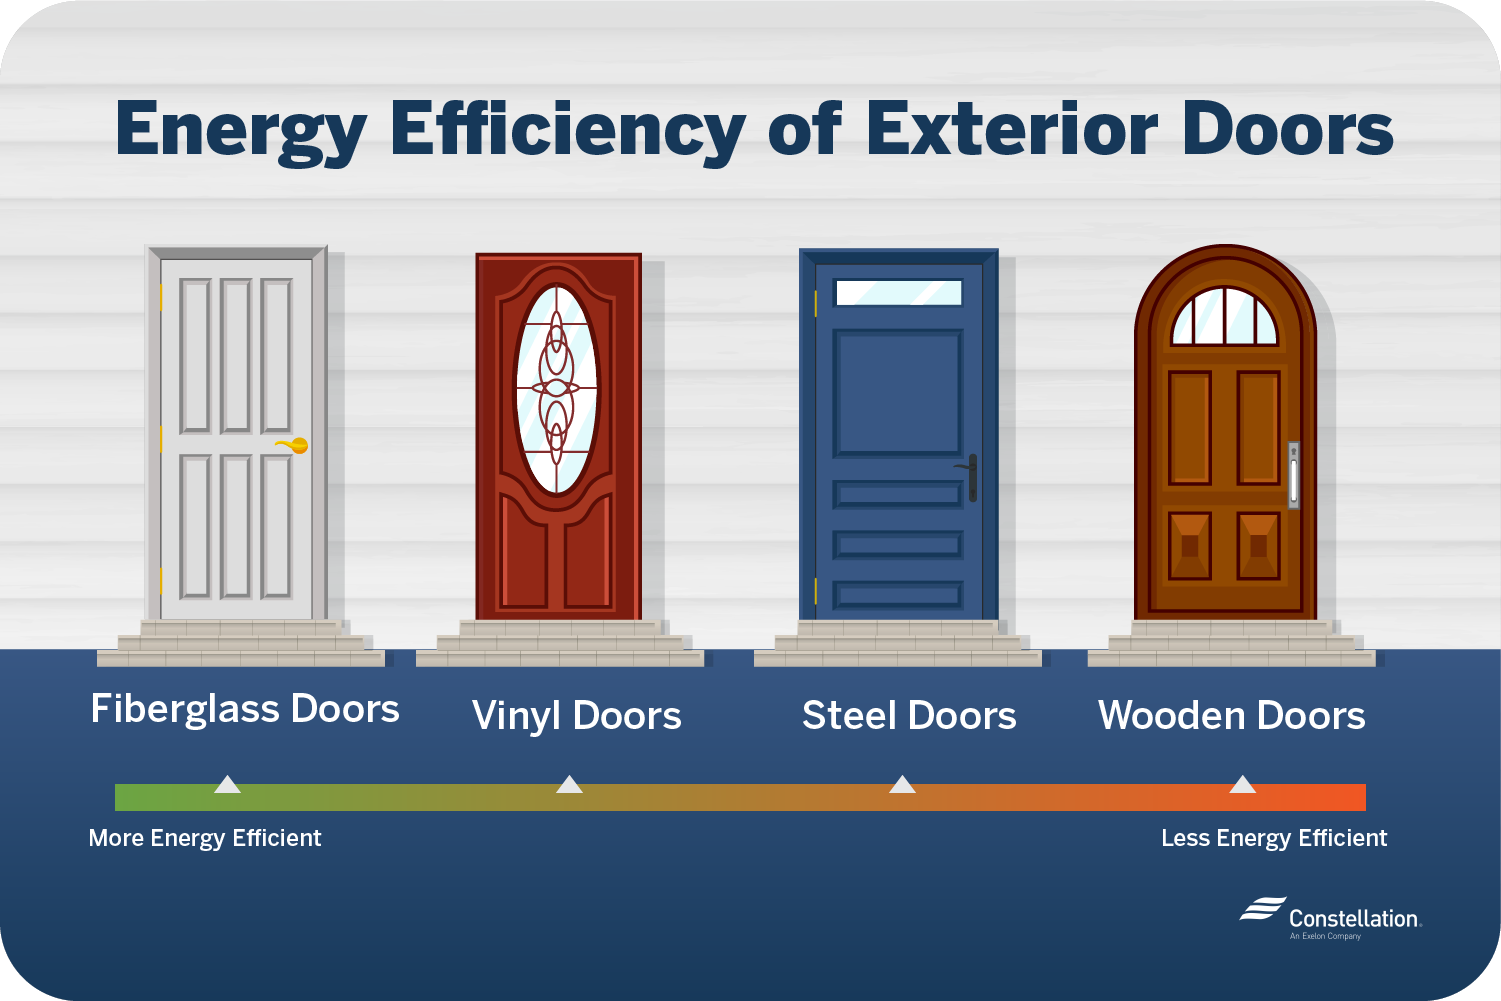 Energy efficiency of exterior doors